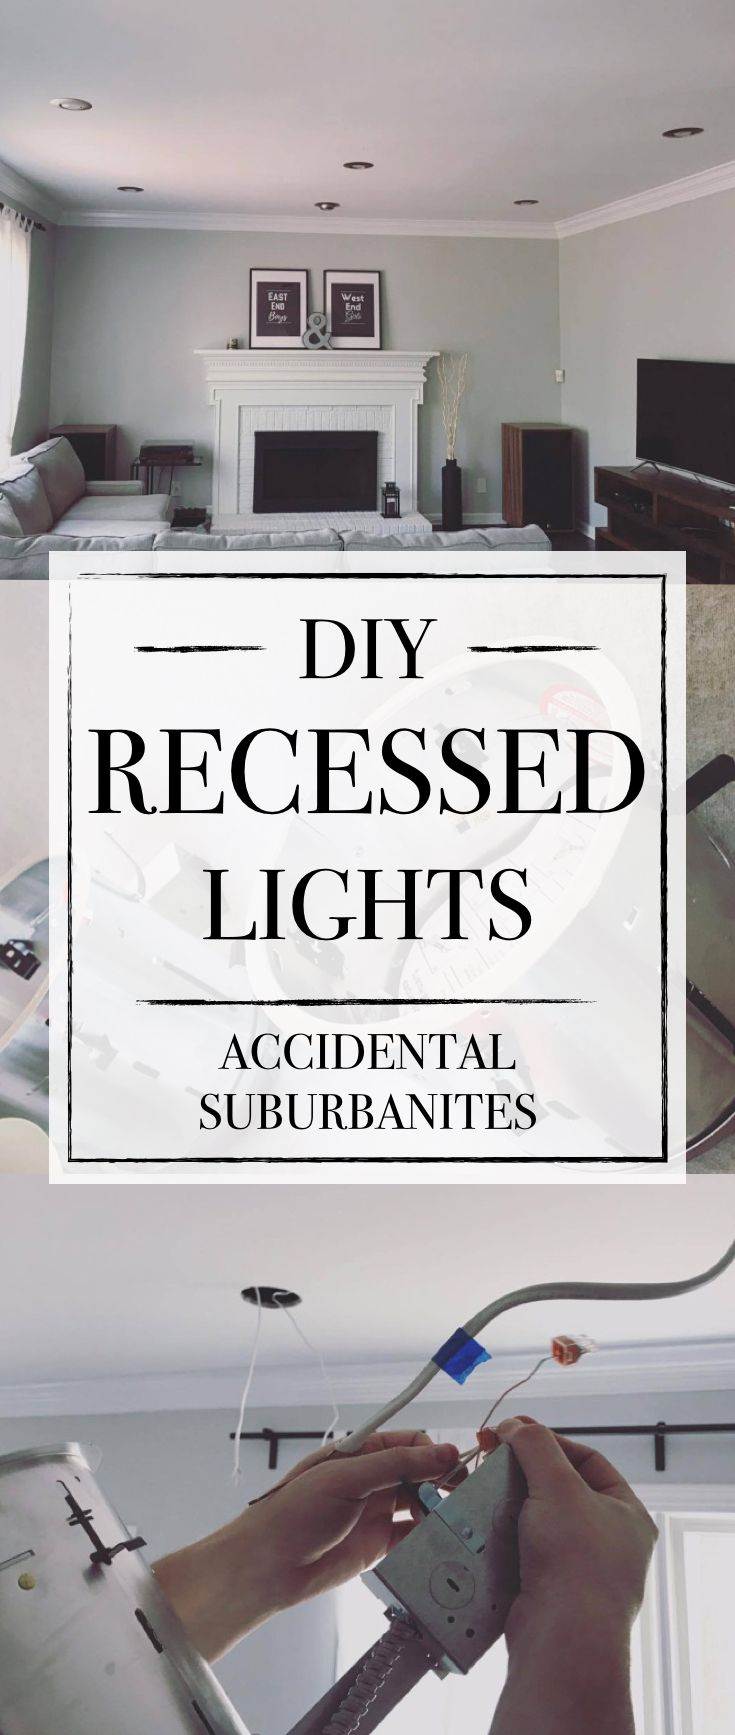 Diy recessed lighting how to install recessed lights